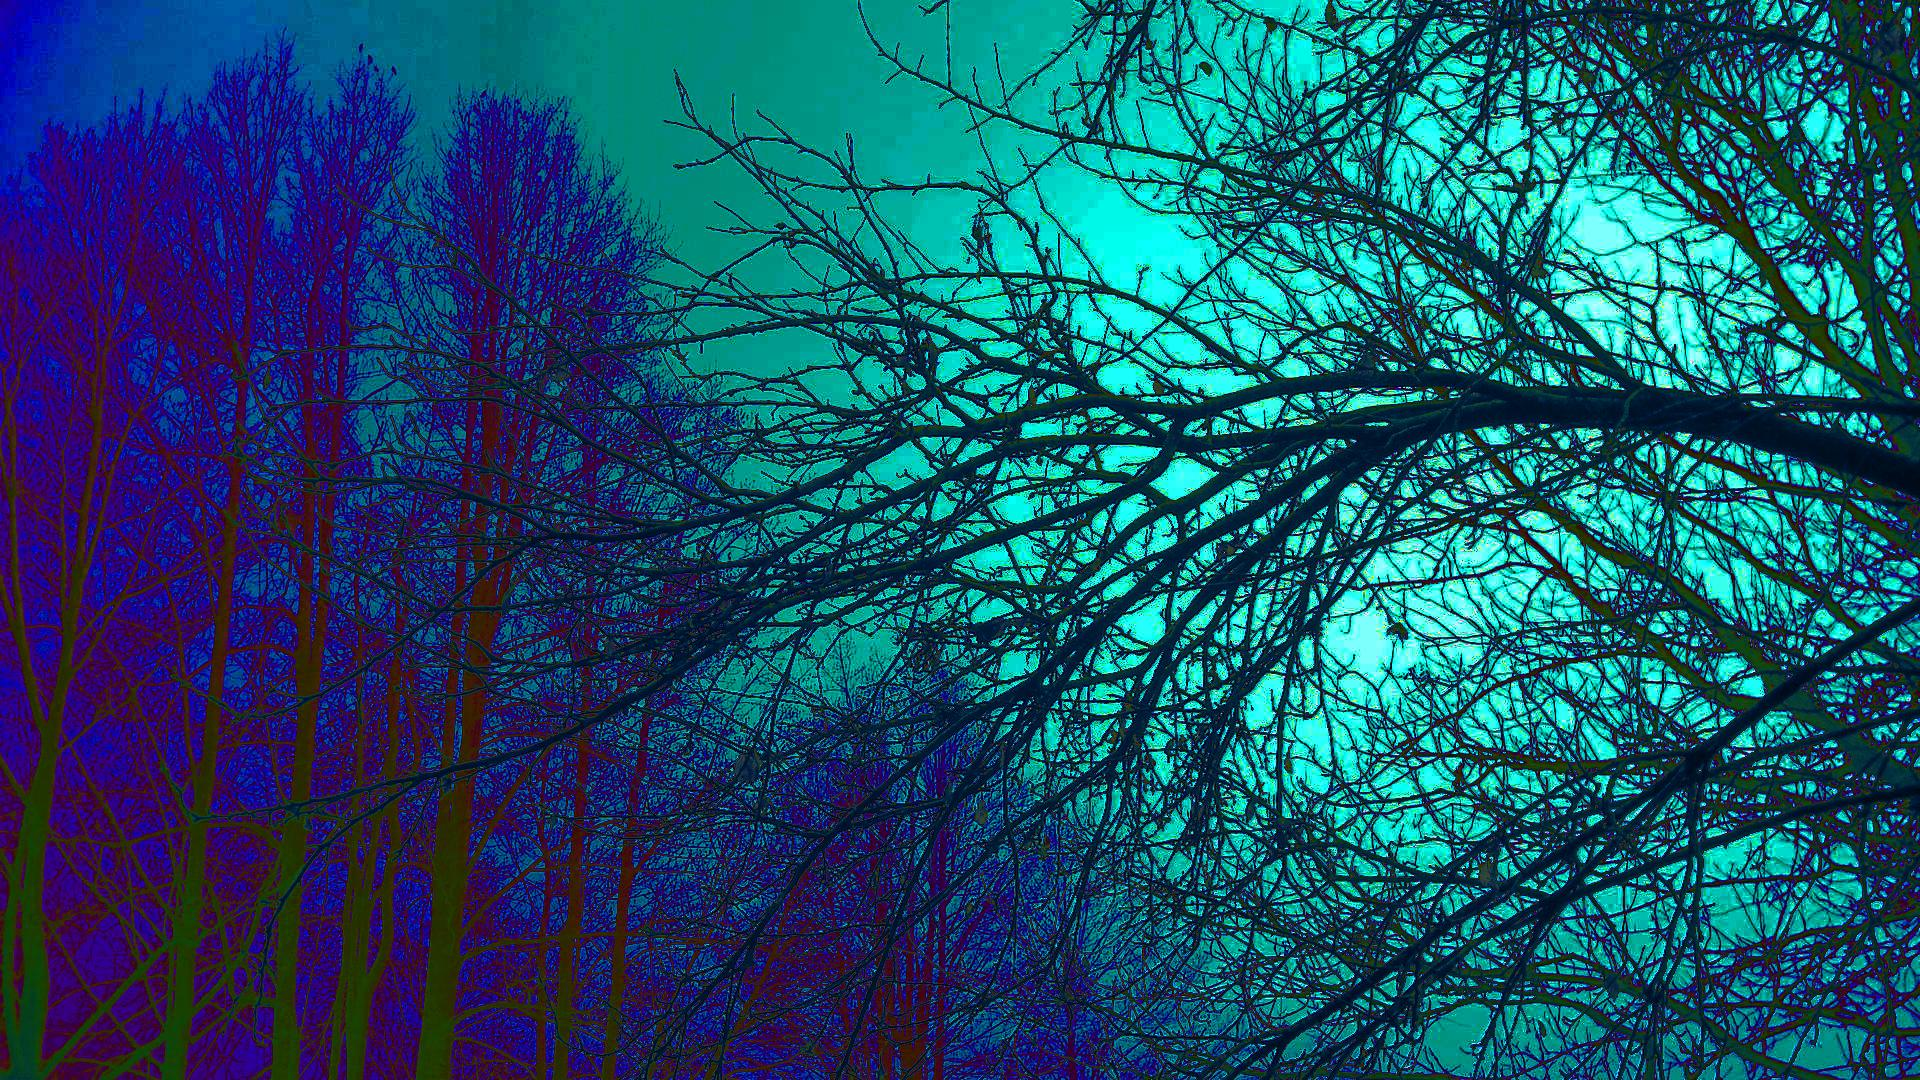 Trippy Trees Wallpaper 50037 1920x1080 px HDWallSourcecom